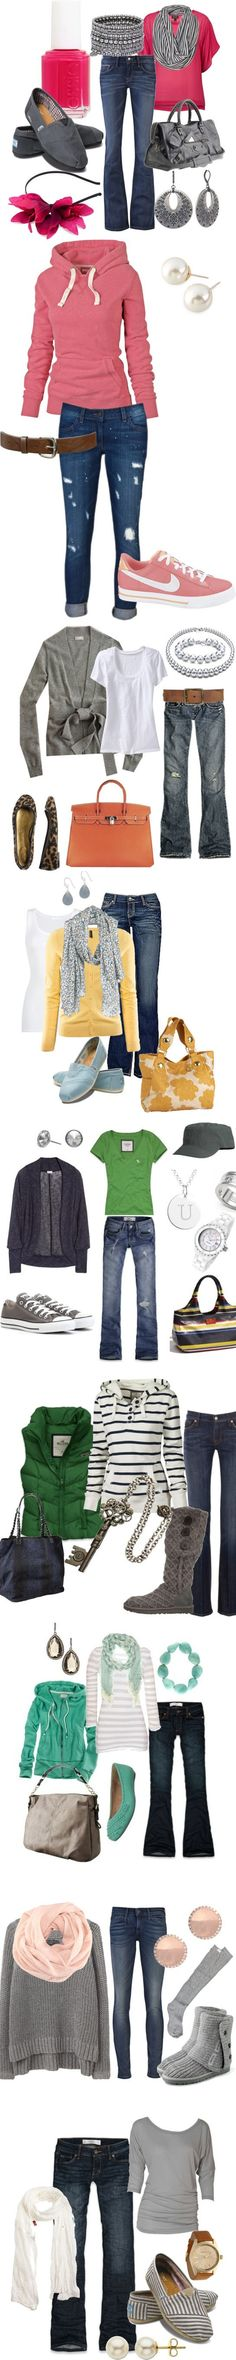 26 Fall Fashions - wonderful sets put together ~ Love em!